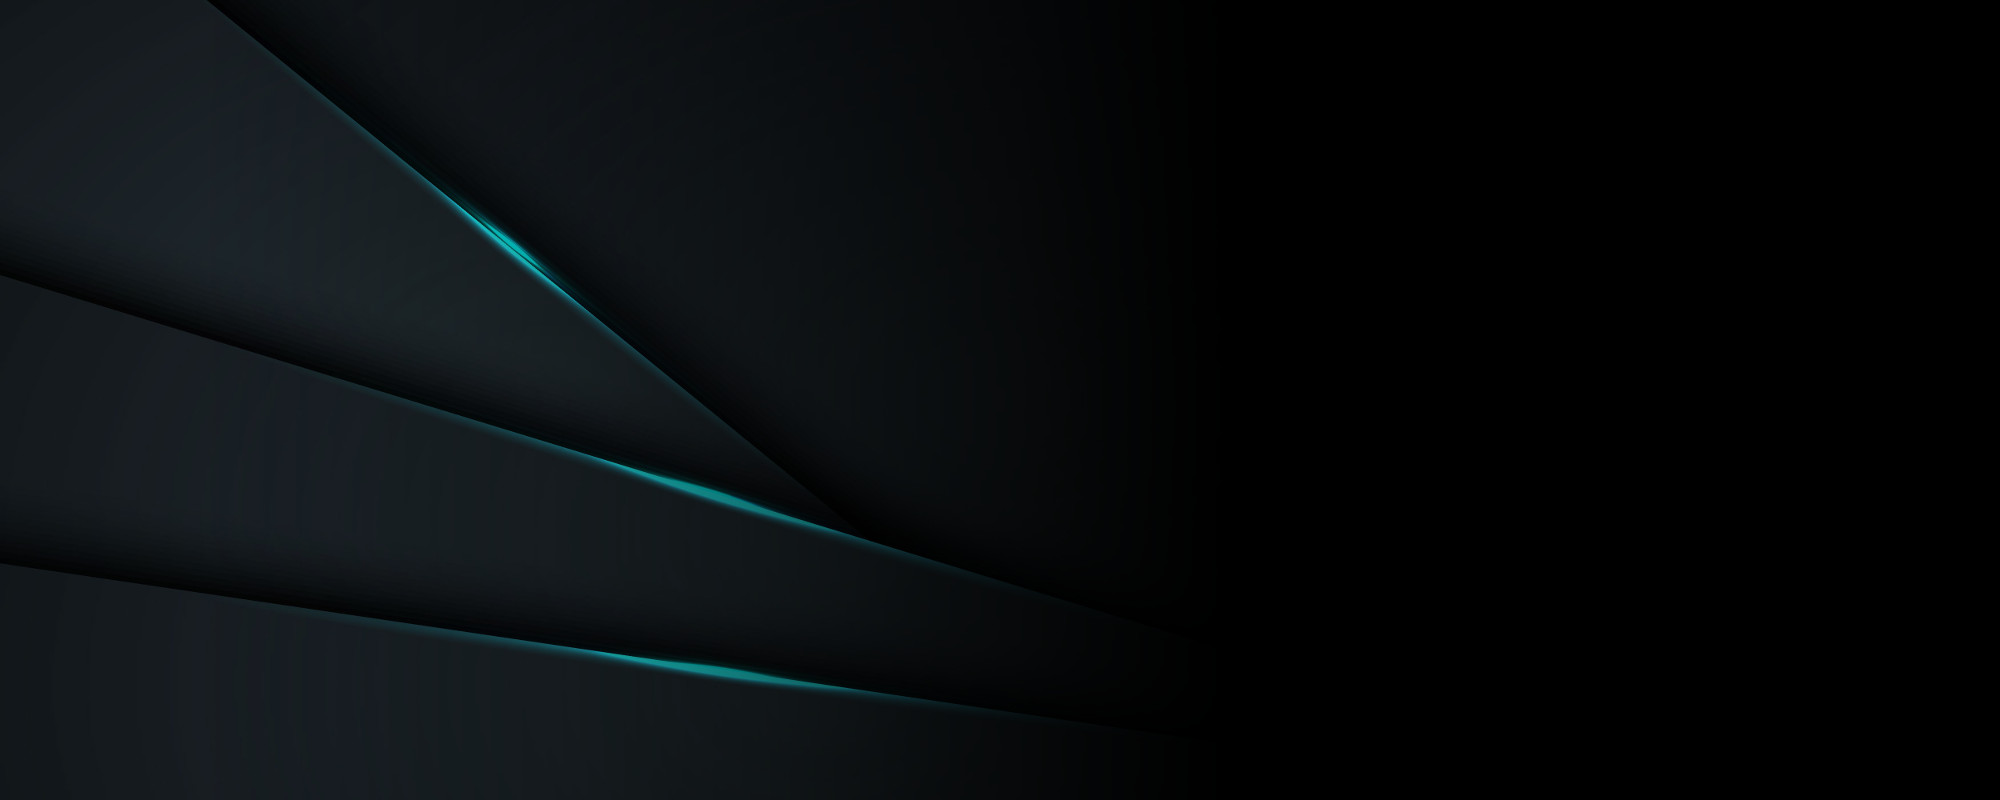 abstract-black-background-with-shining-blue-diagonal-layers